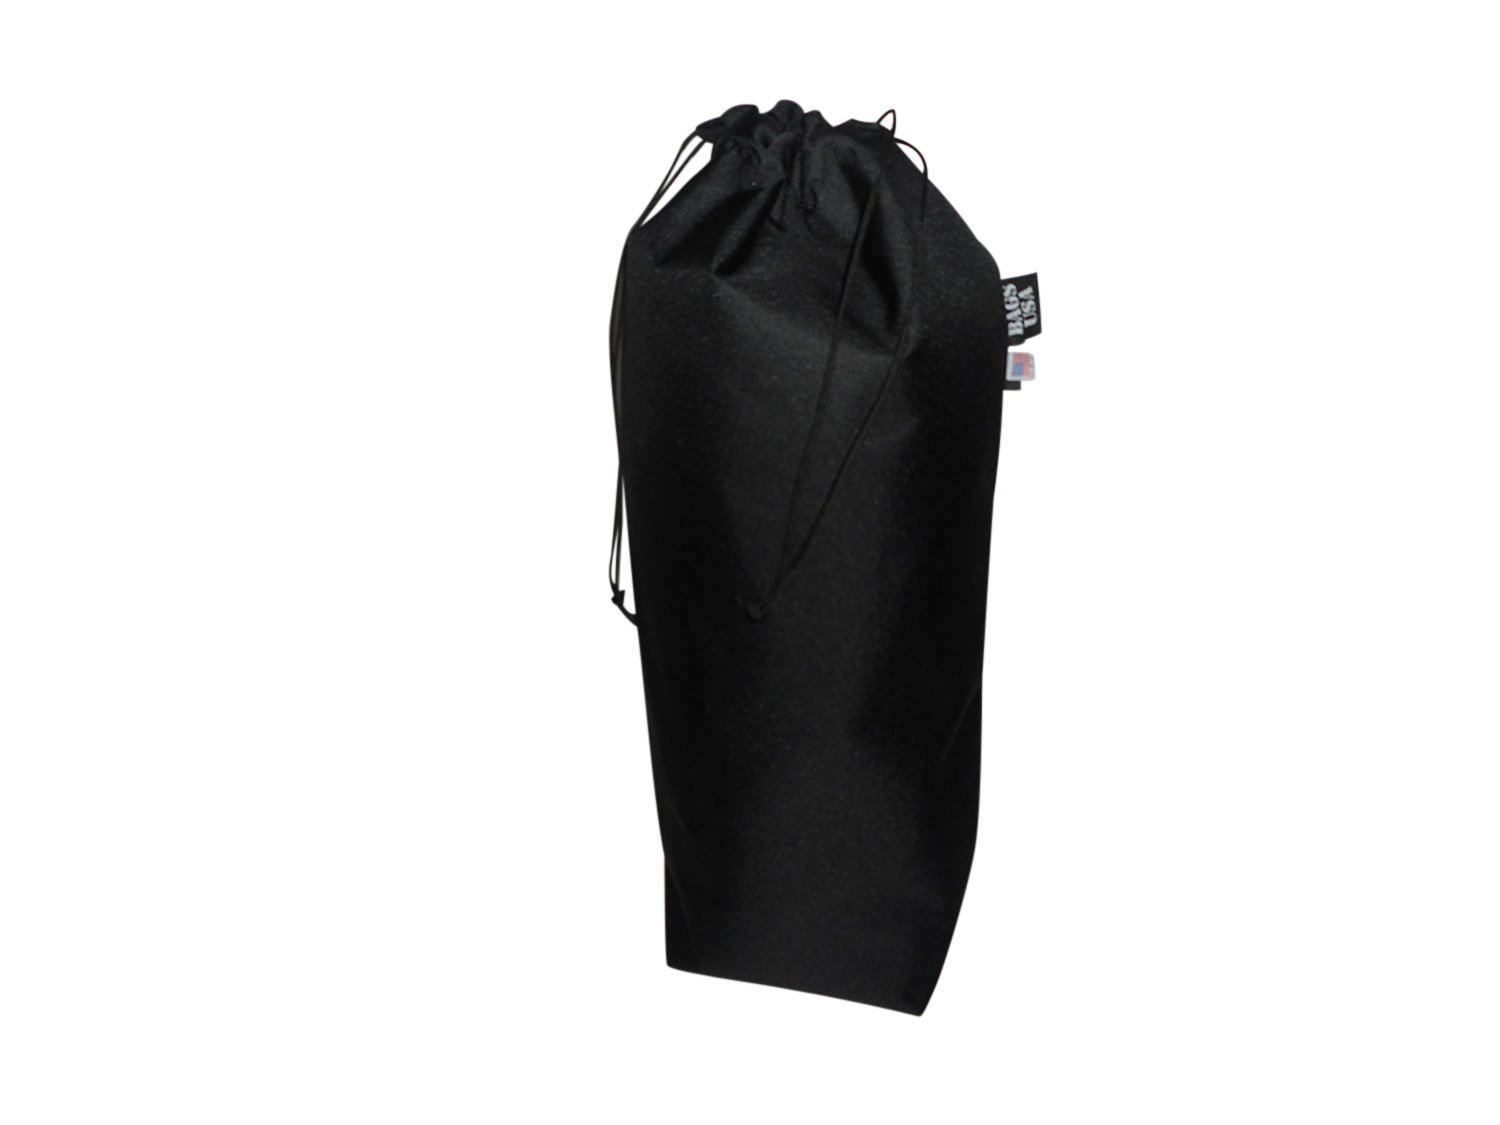 Sand bag hold 50 lb sand great for canopy or camping tent Made in U.S.A. (Black)